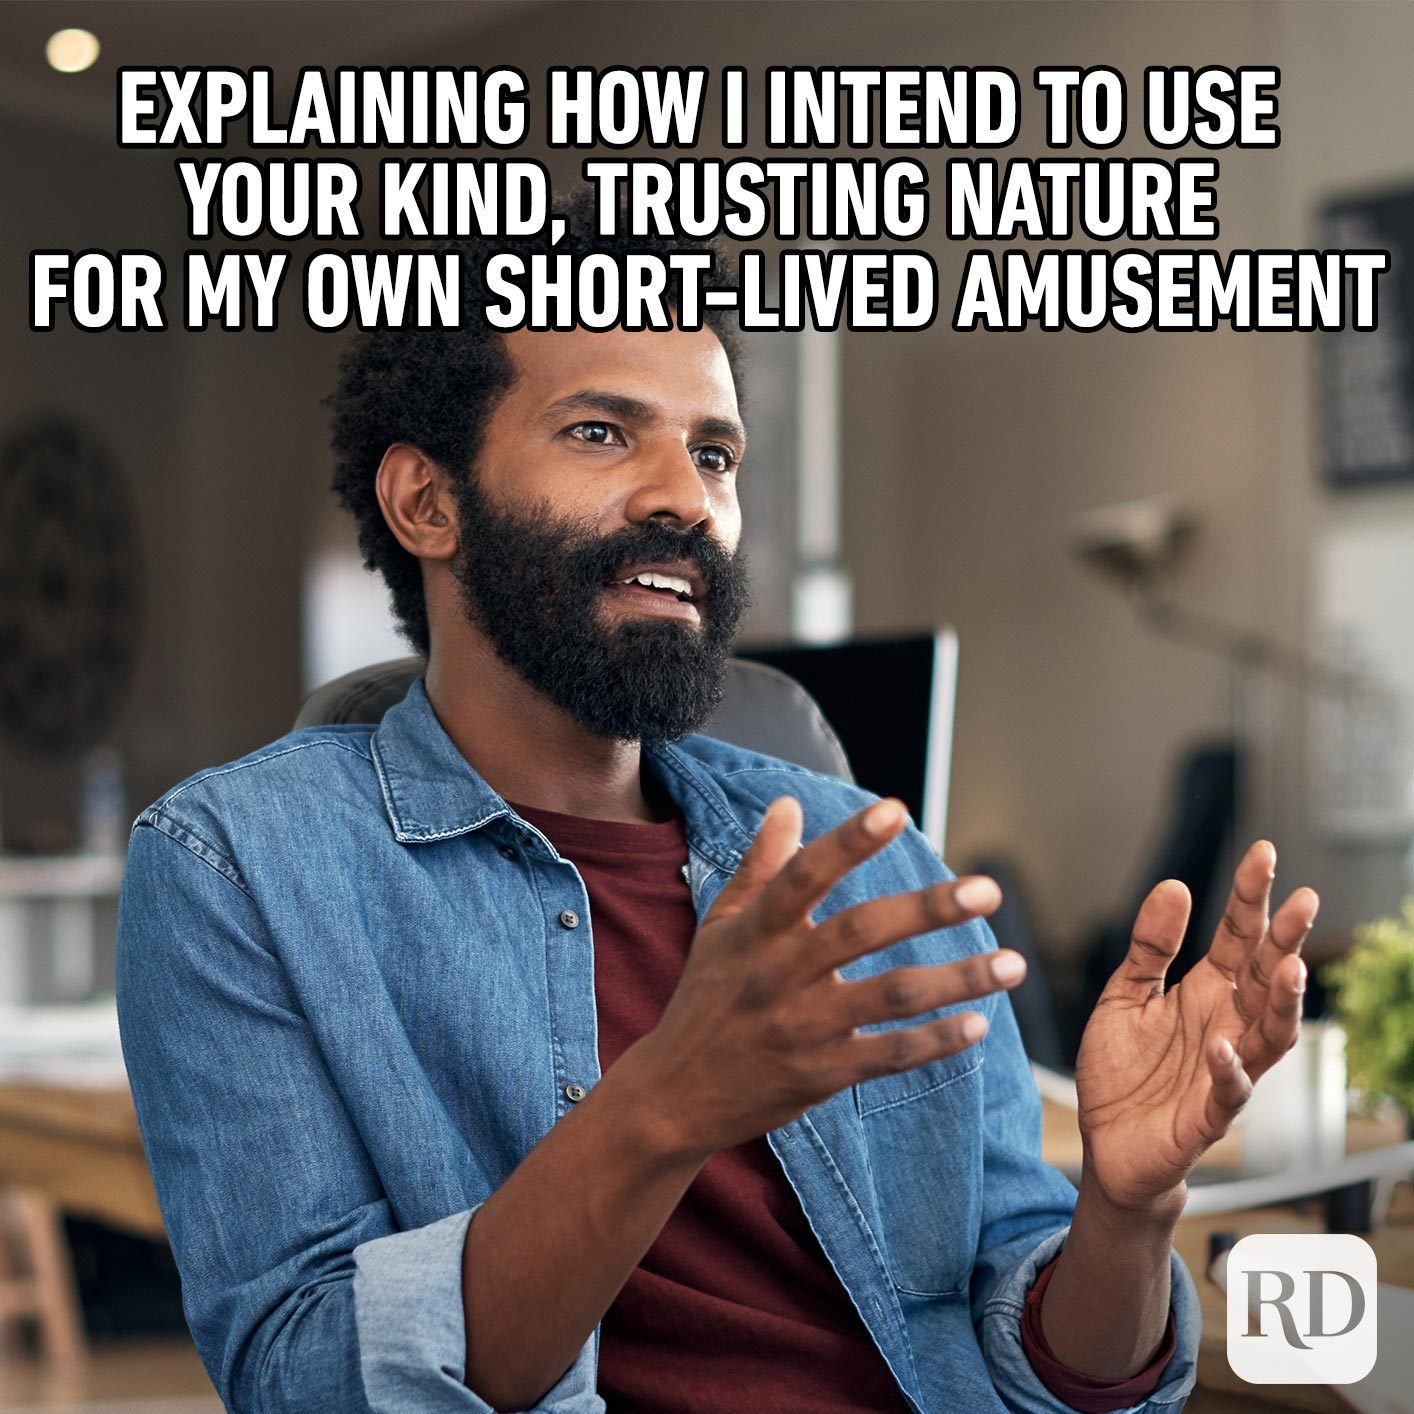 Man explaining something. Meme text: Explaining how I intend to use your kind, trusting nature for my own short-lived amusement